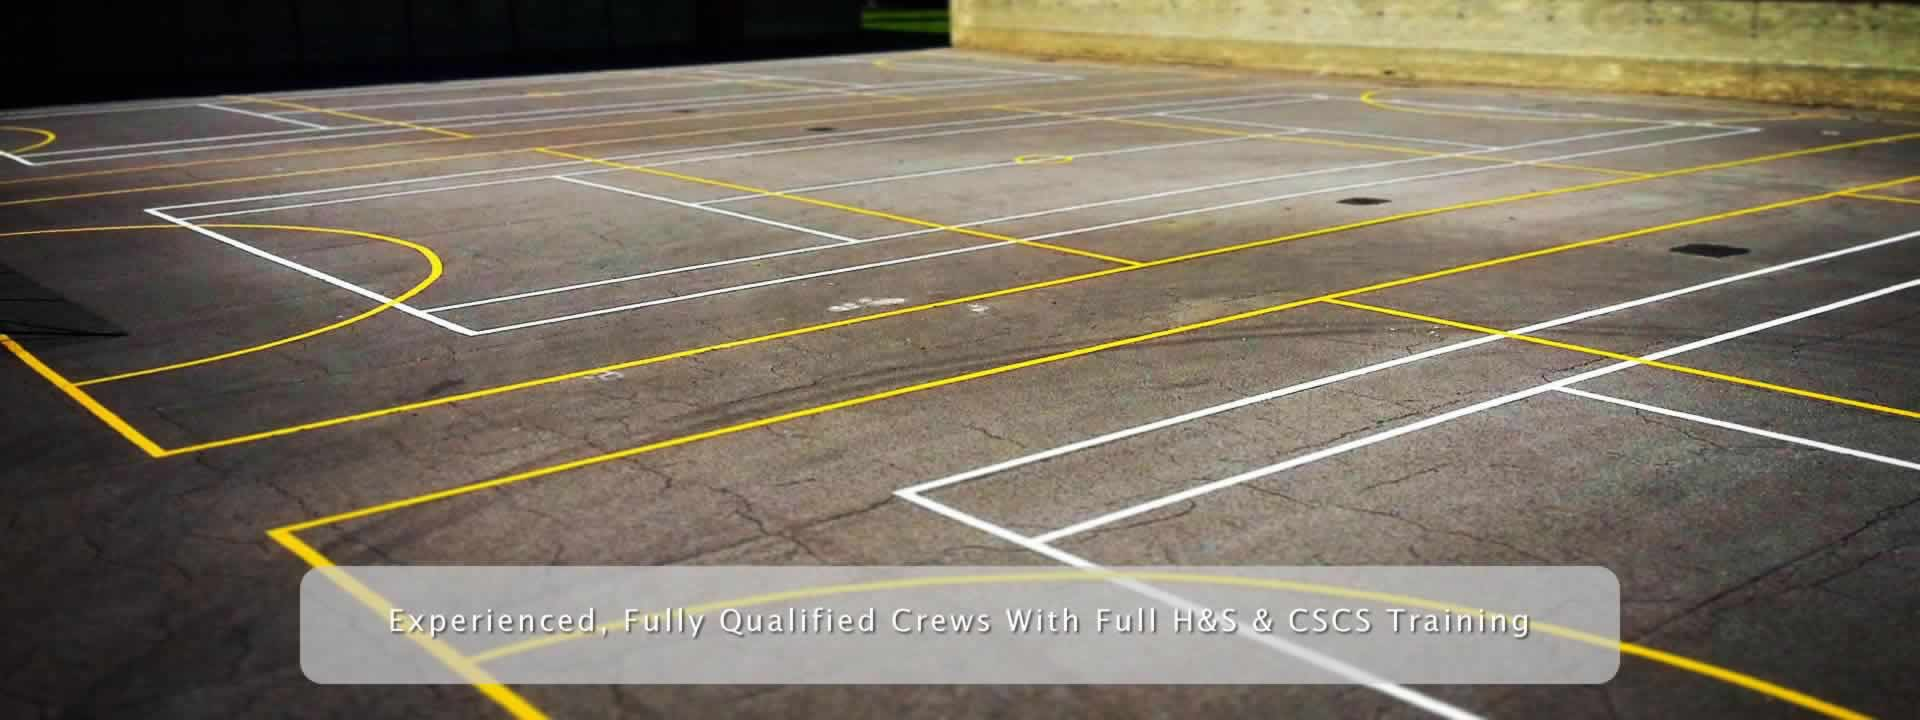 Sports Court Line Painting Services